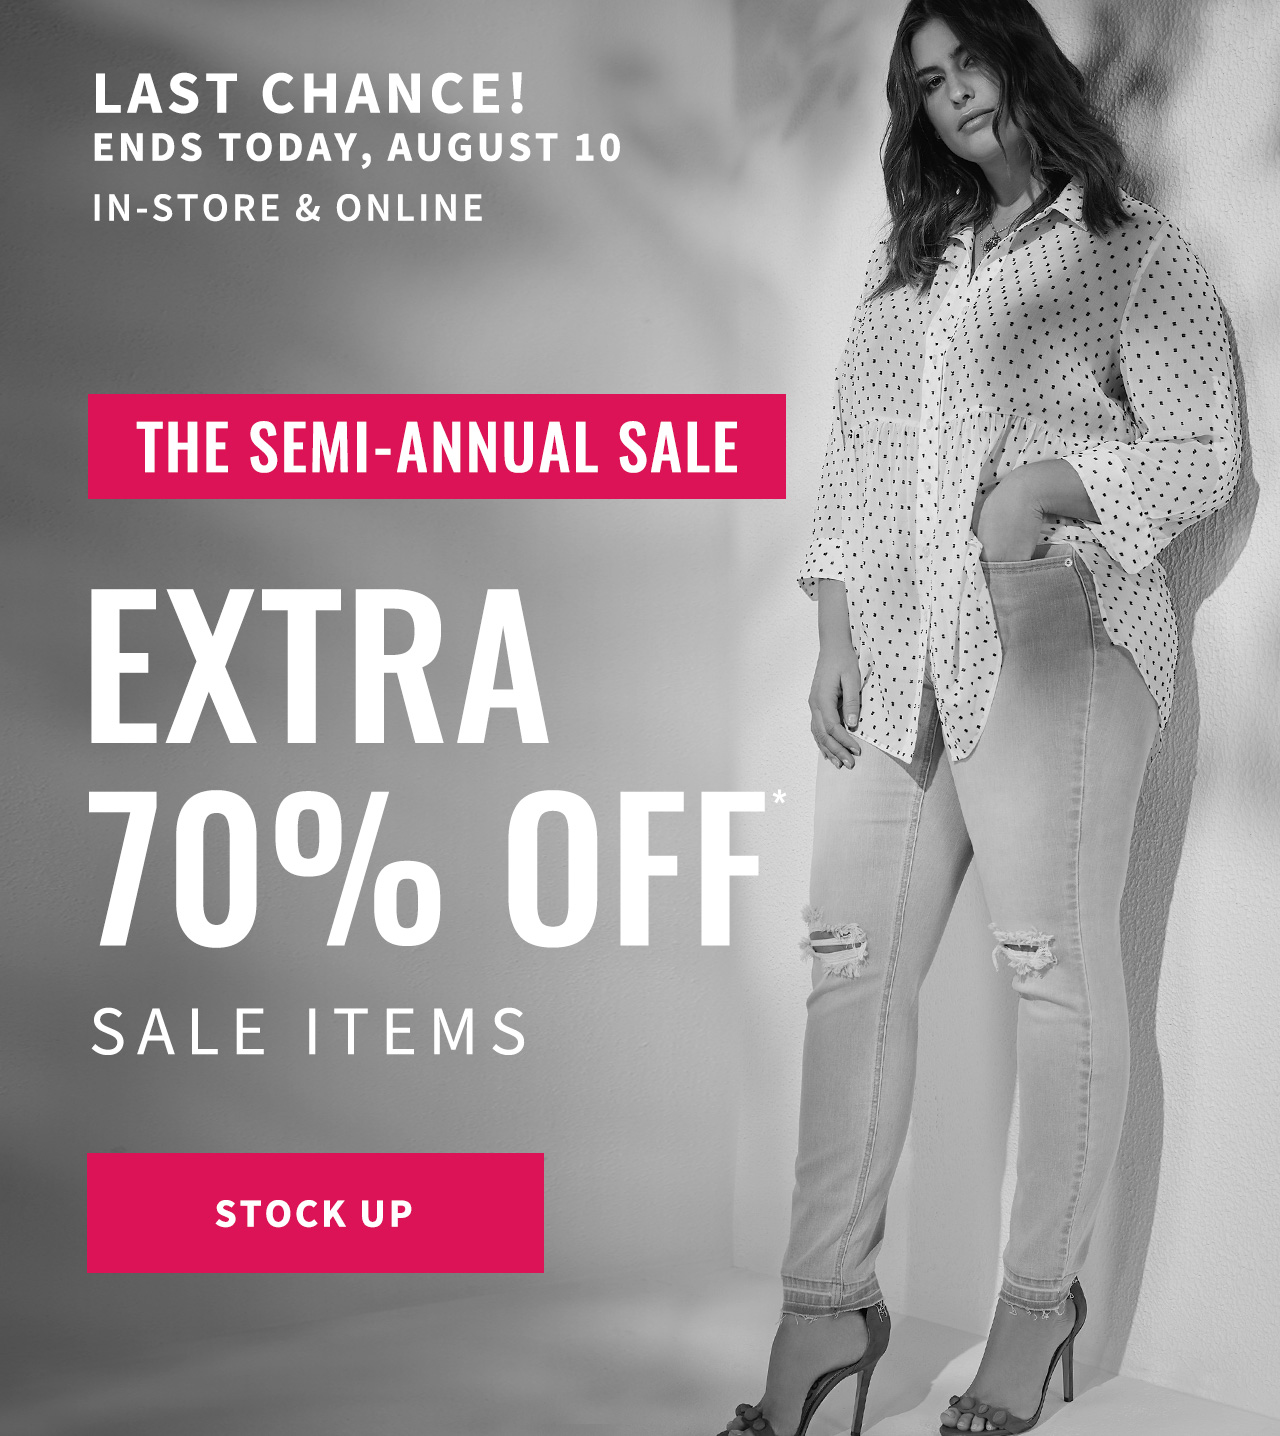 Extra 70% off* sale items.